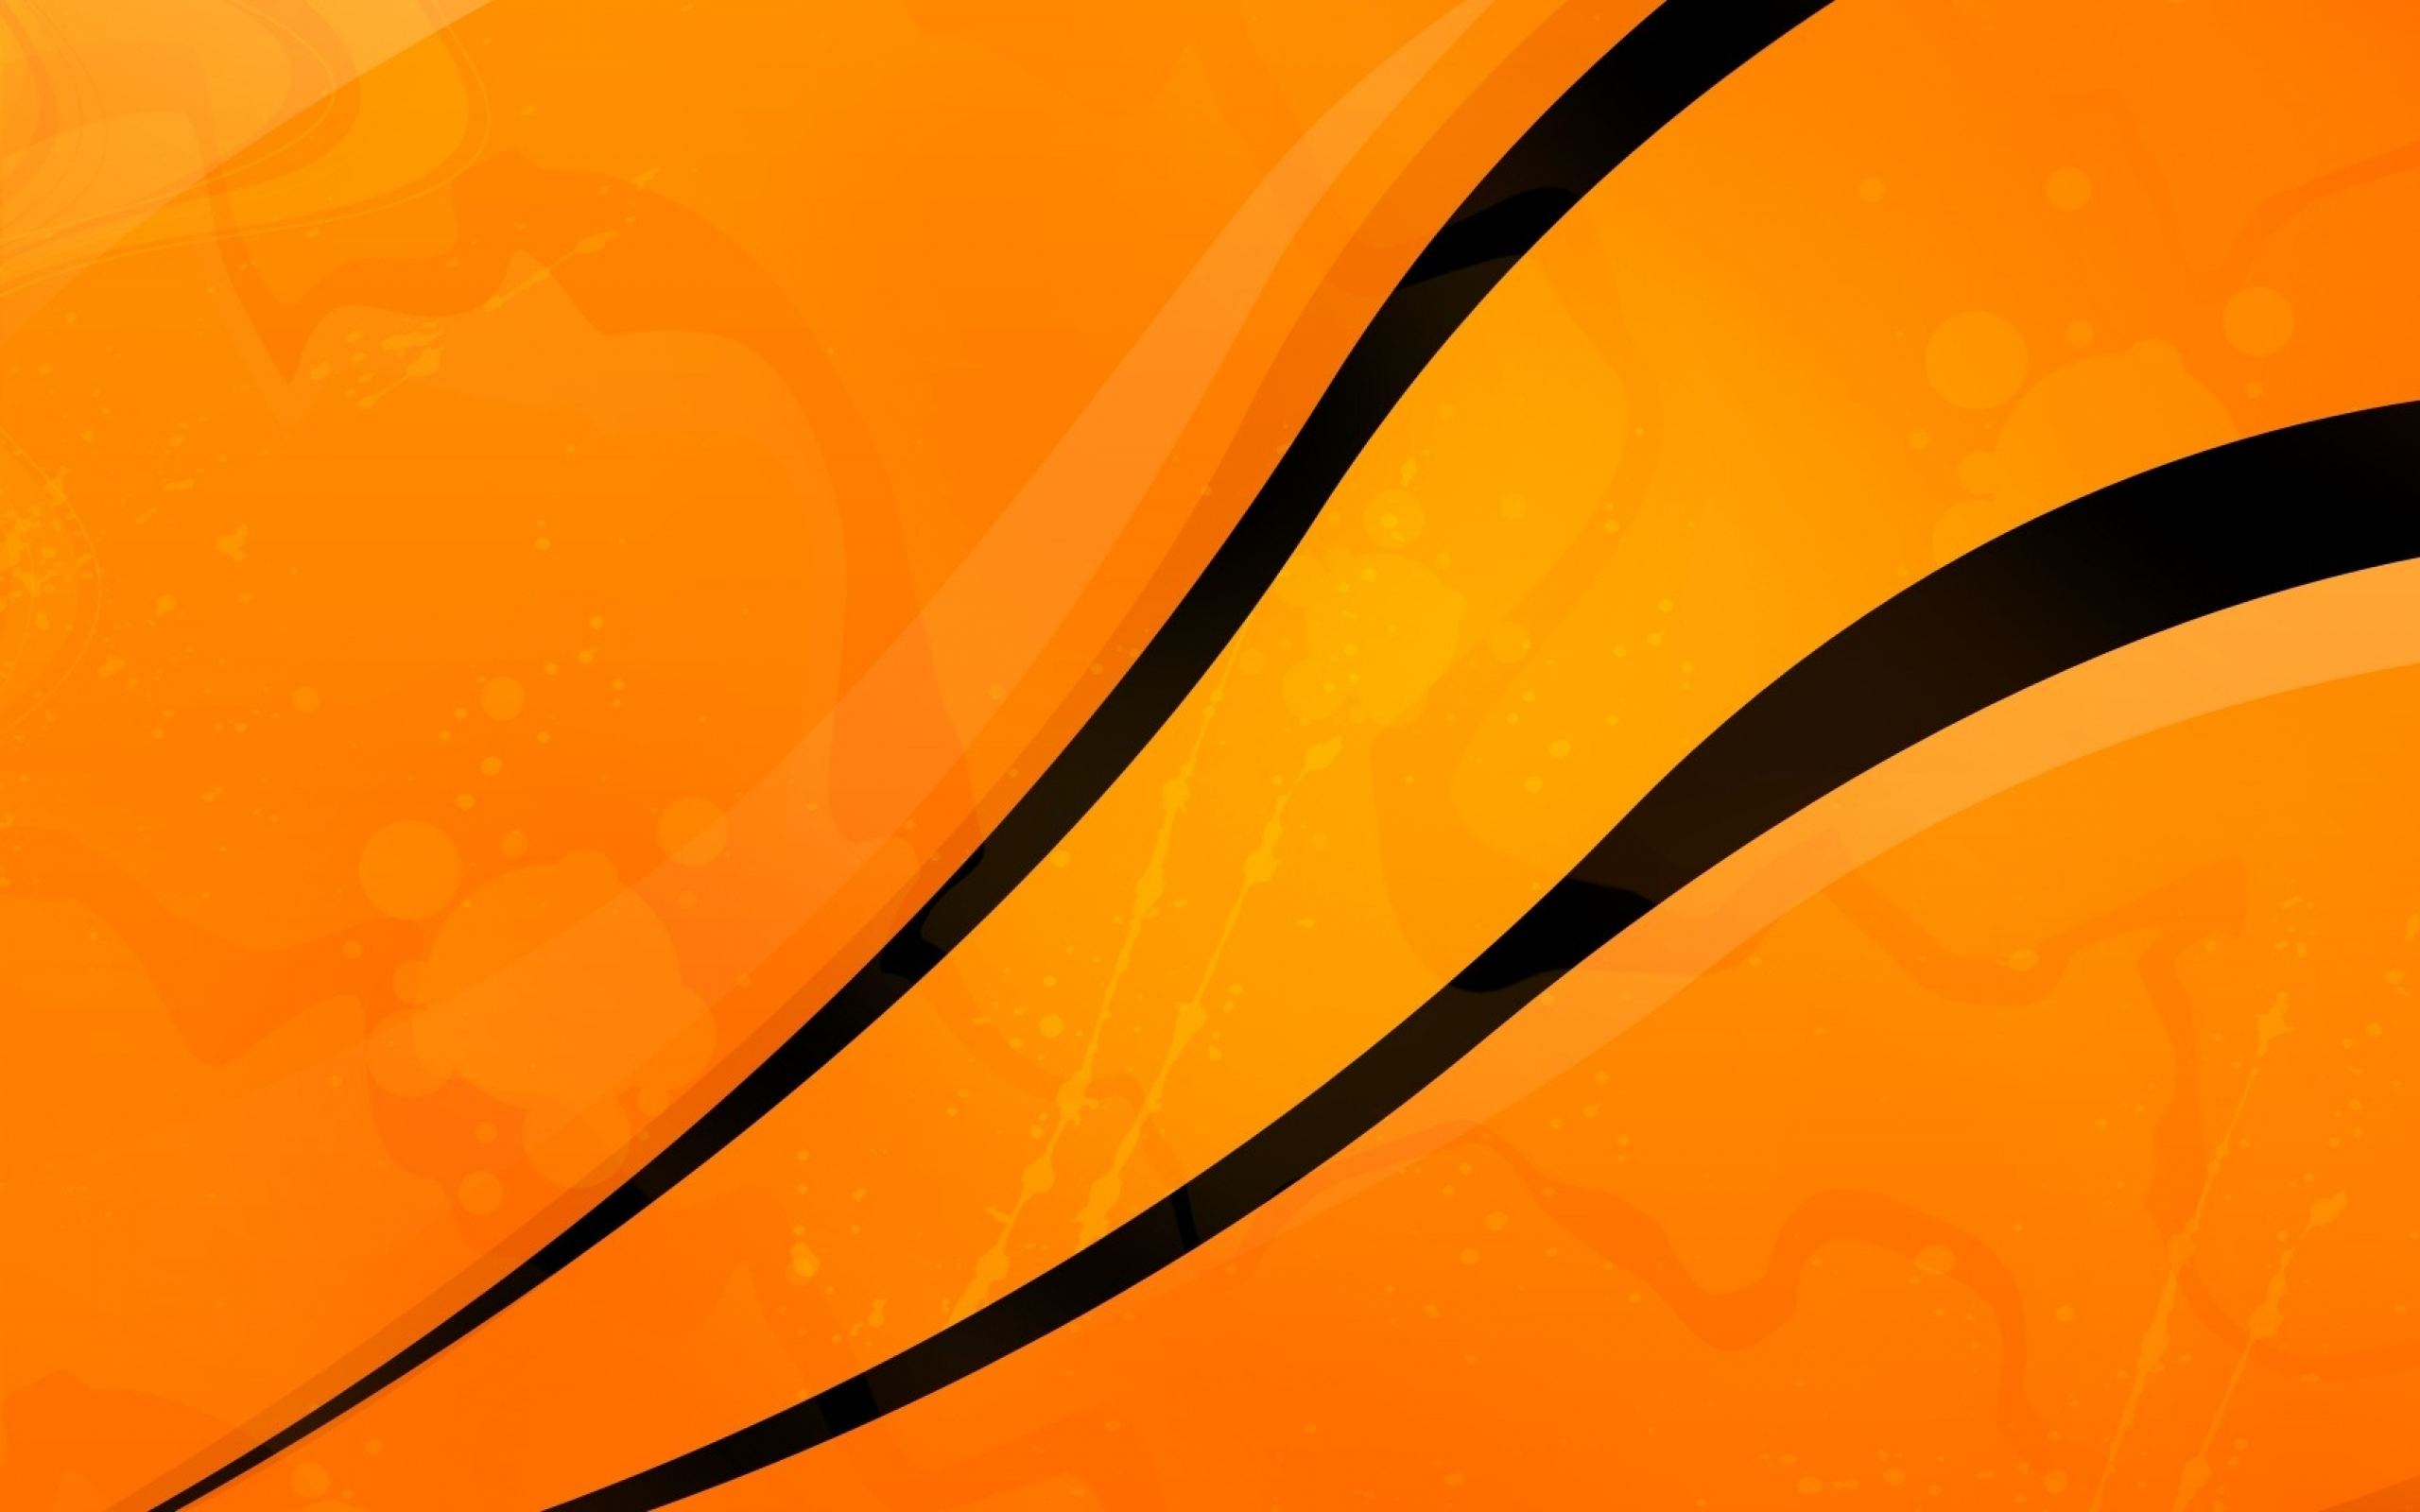 Abstract Orange Wallpaper 48551 2560x1600 px HDWallSourcecom